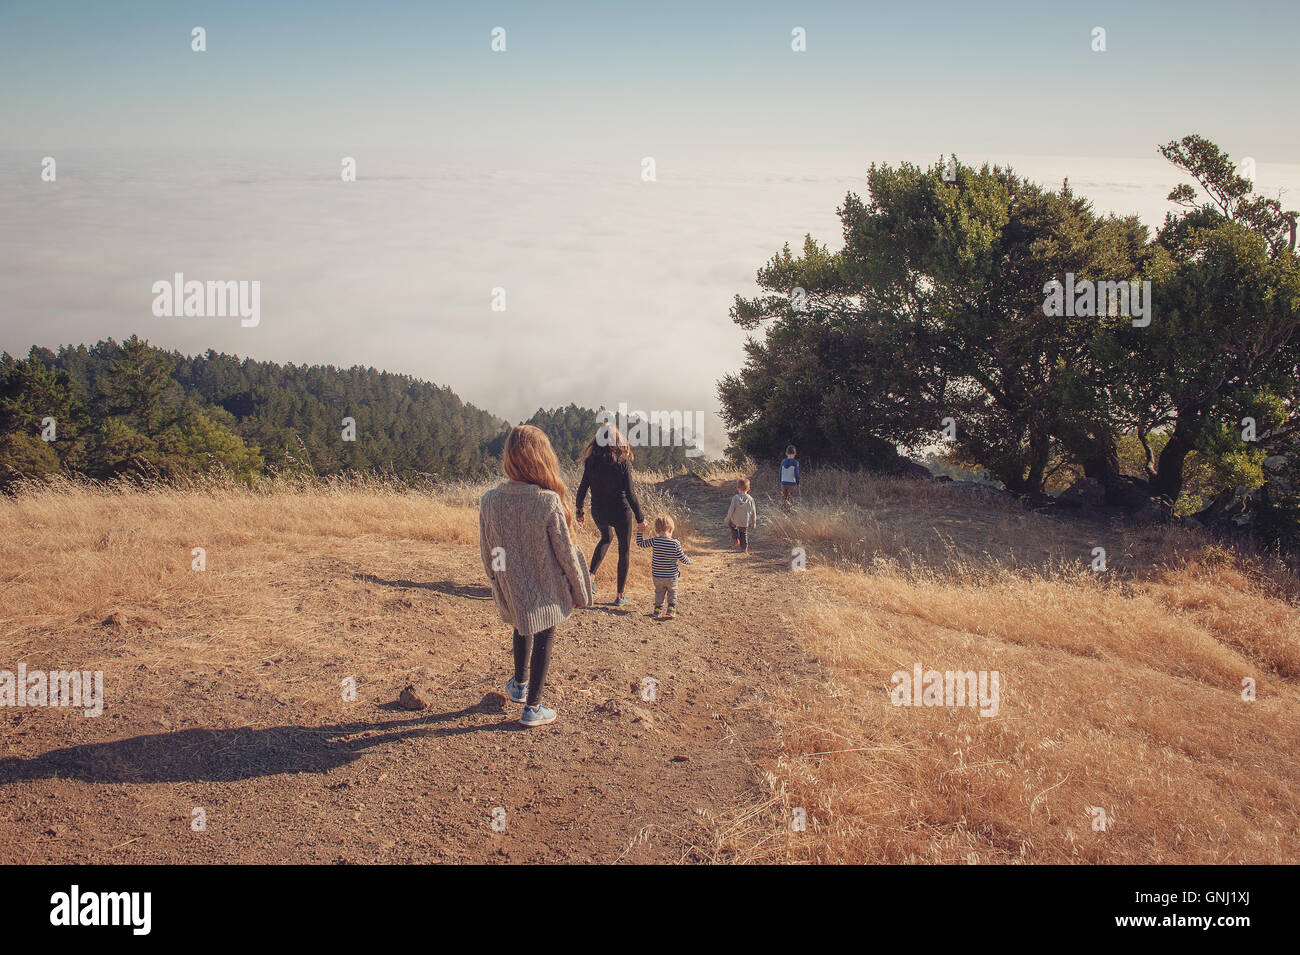 Mutter mit vier Kindern, Tamalpais Valley, California, Amerika, USA Stockfoto